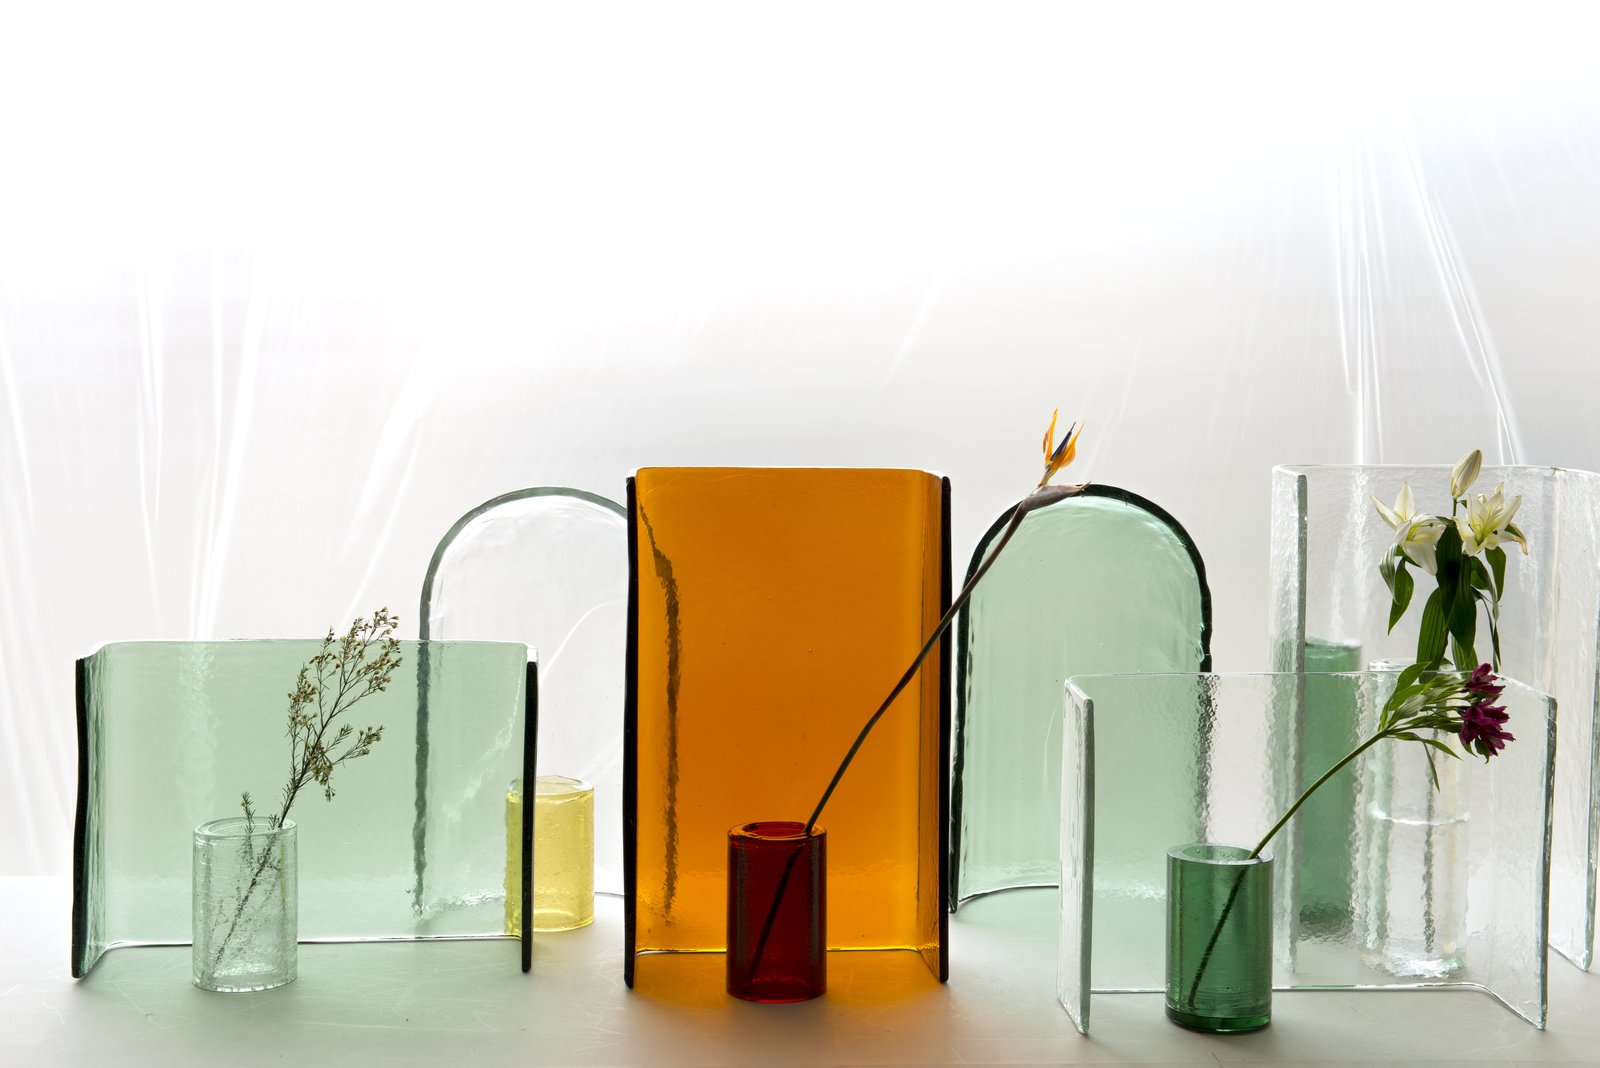 The Alcova collection by Ronan and Erwan Bouroullec for Wonderglass